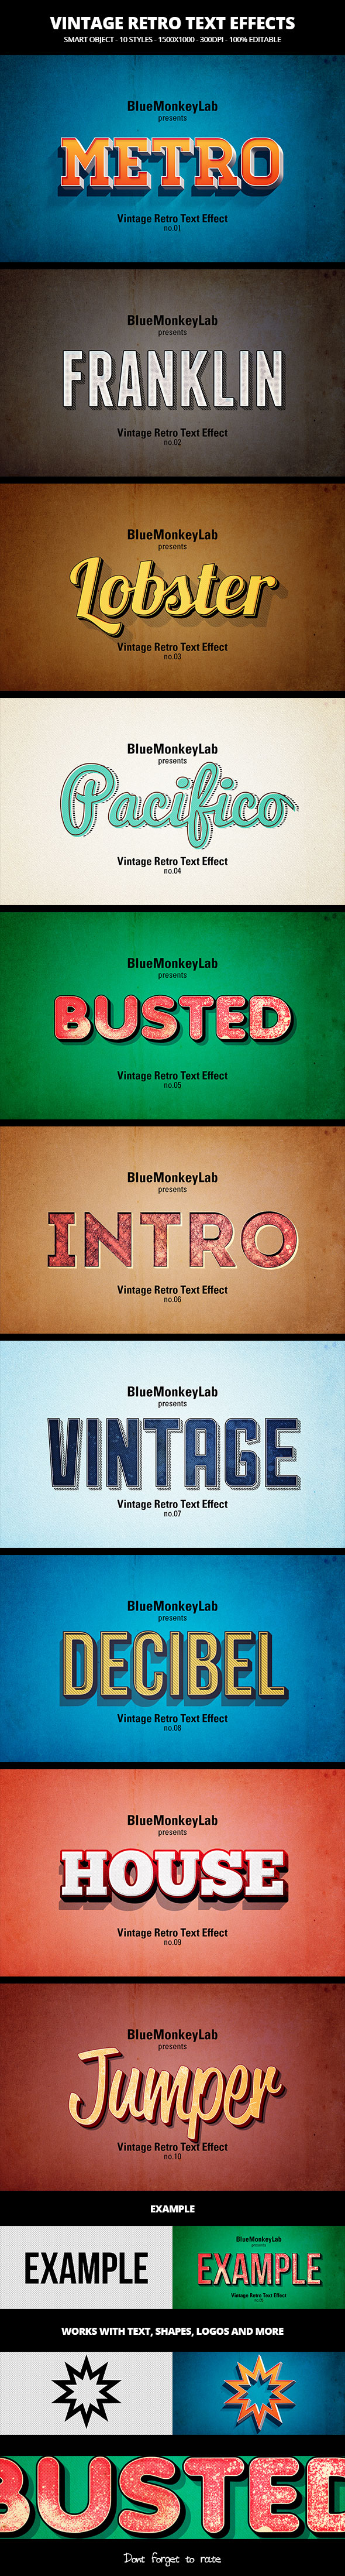 Vintage Retro Text Effects - Text Effects Actions